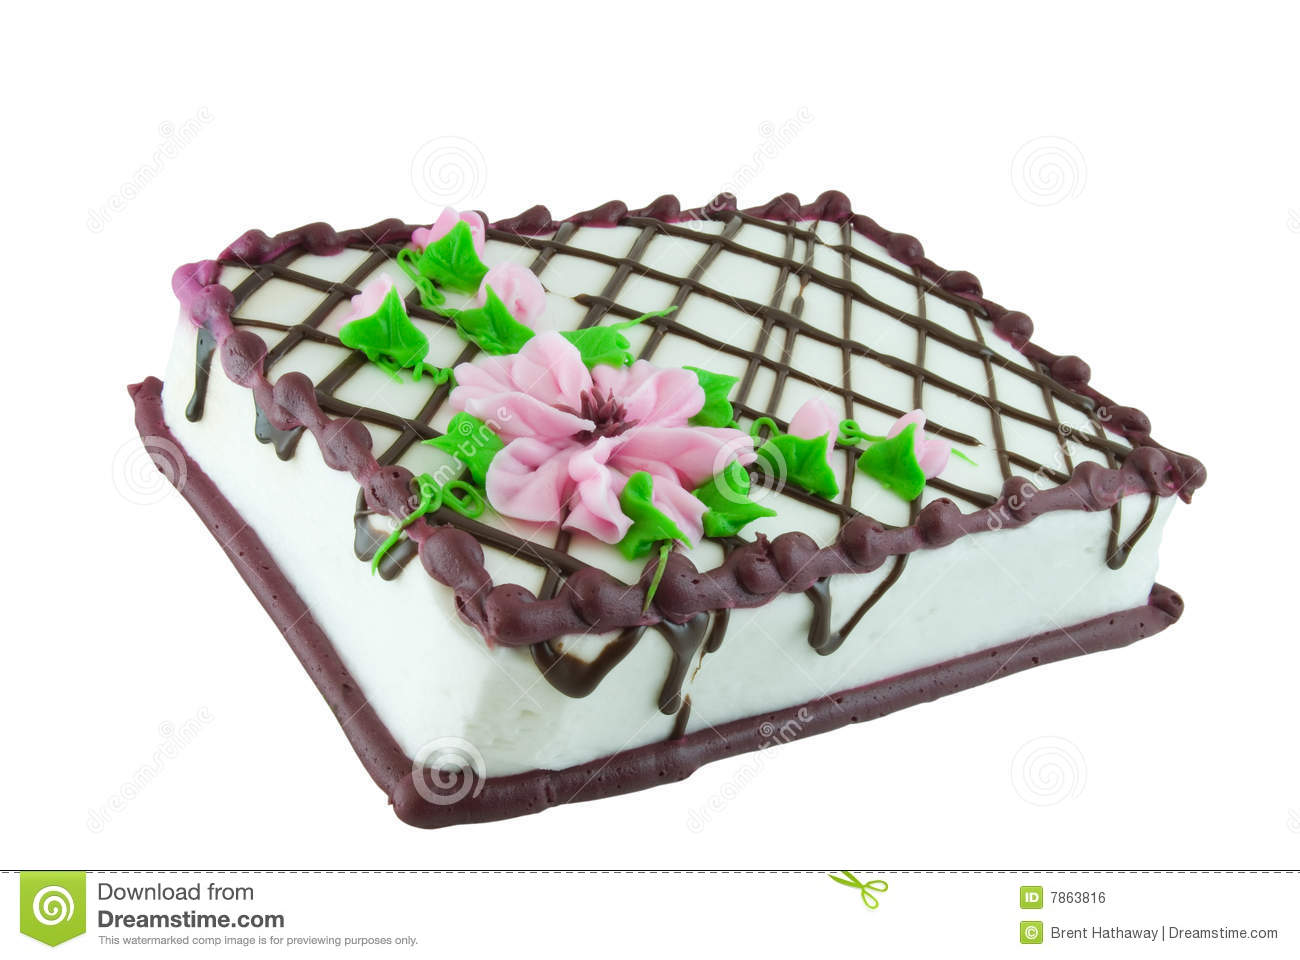 Sheet cake clipart vector freeuse stock Sheet Cake Royalty Free Stock Image - Image: 7863816 vector freeuse stock